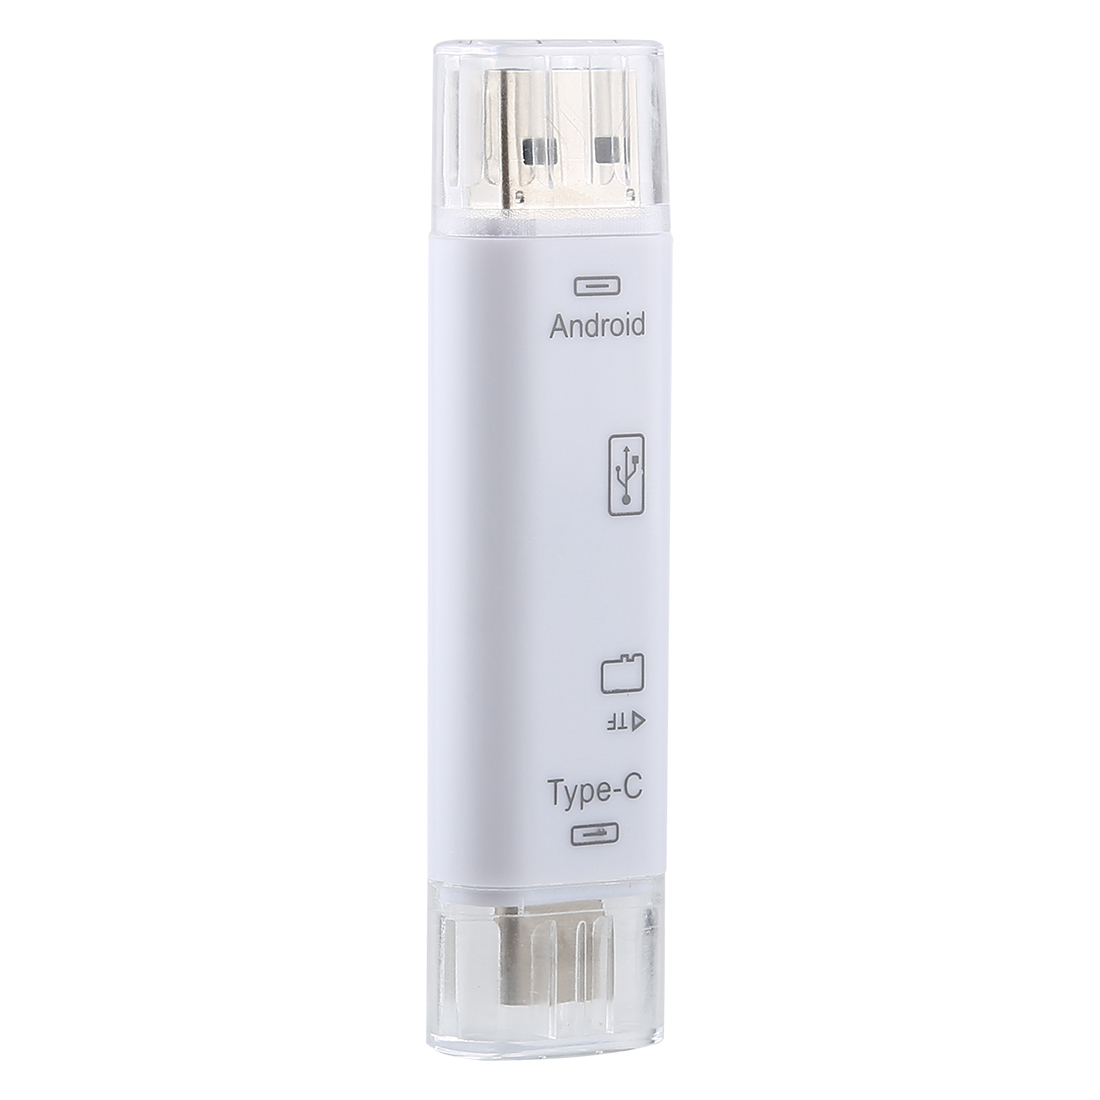 D-188 3 in 1 TF & USB to Micro USB & Type-C Card Reader OTG Adapter Connector (Silver)